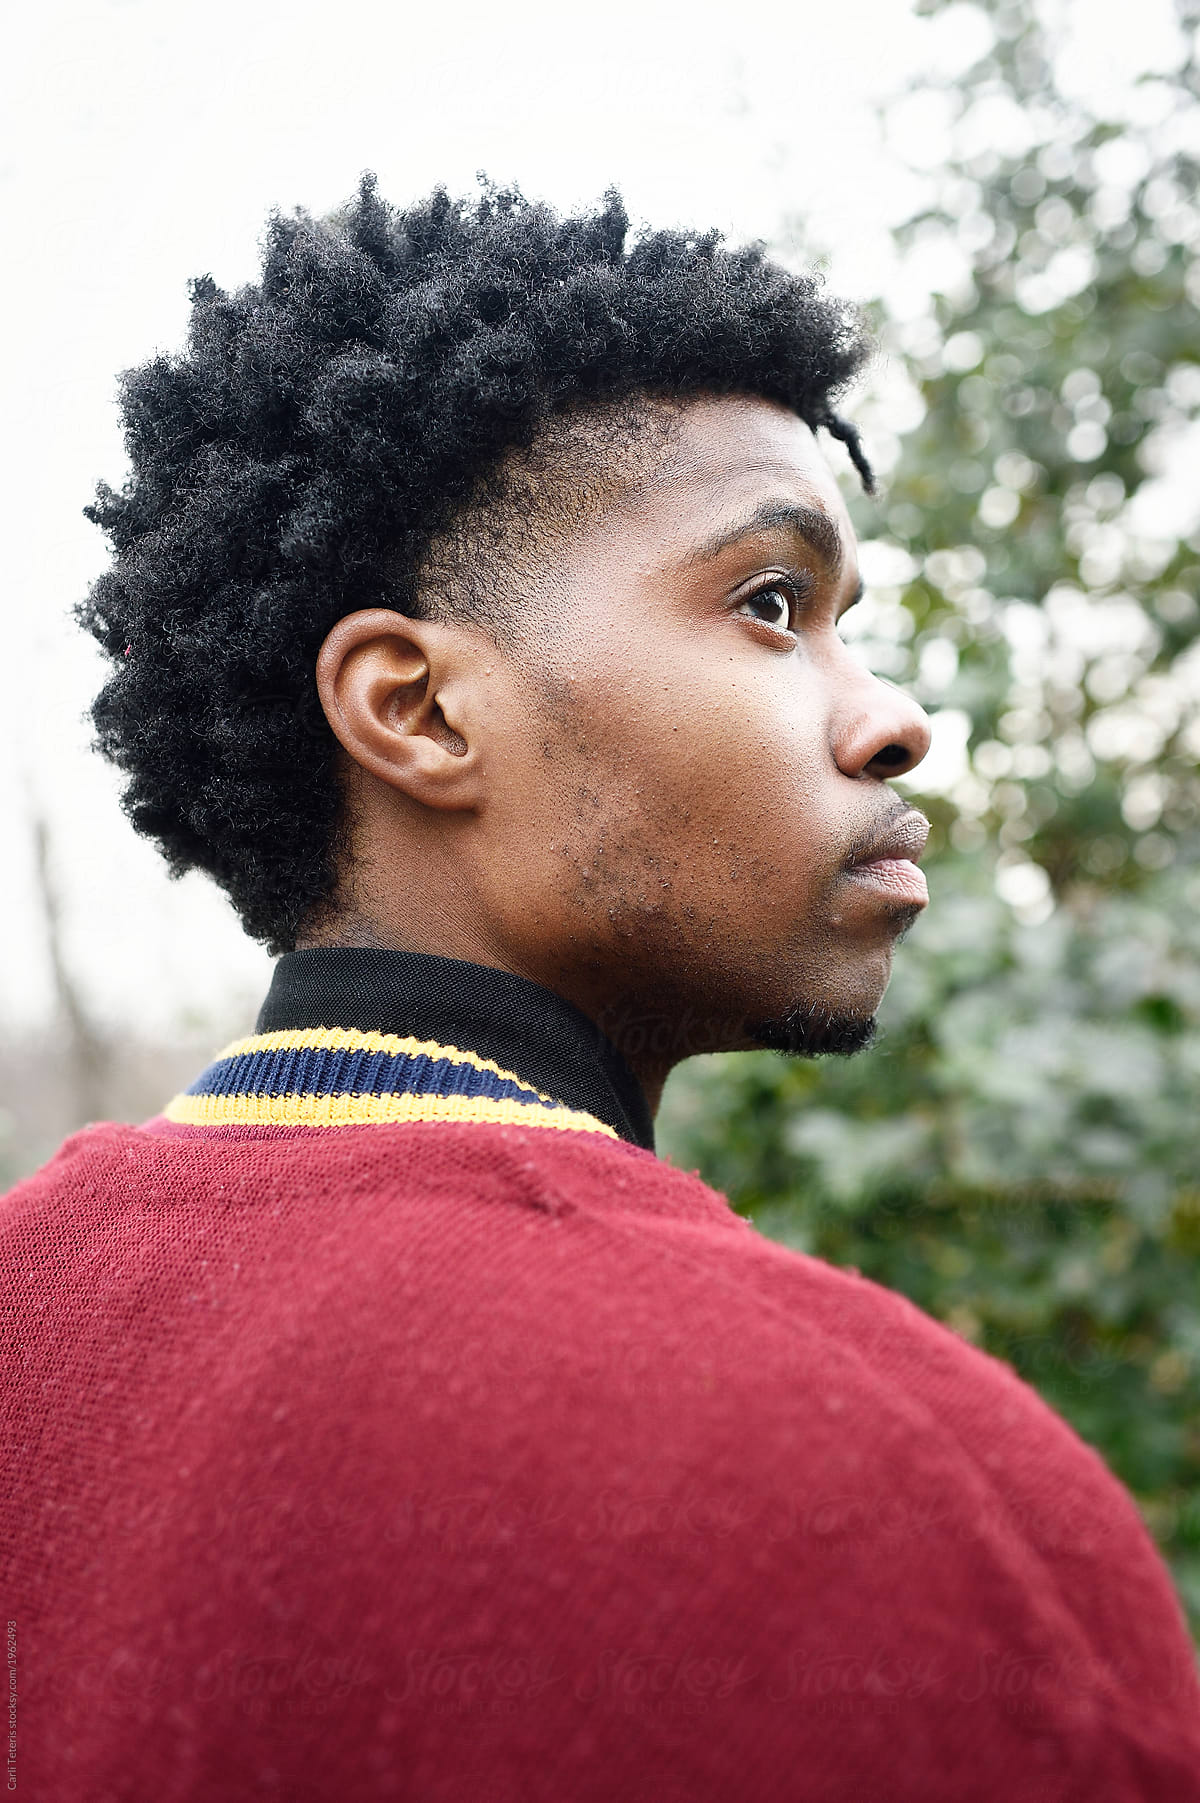 Side View Of A Young Man In A Red Sweater With A Modern Hair Style